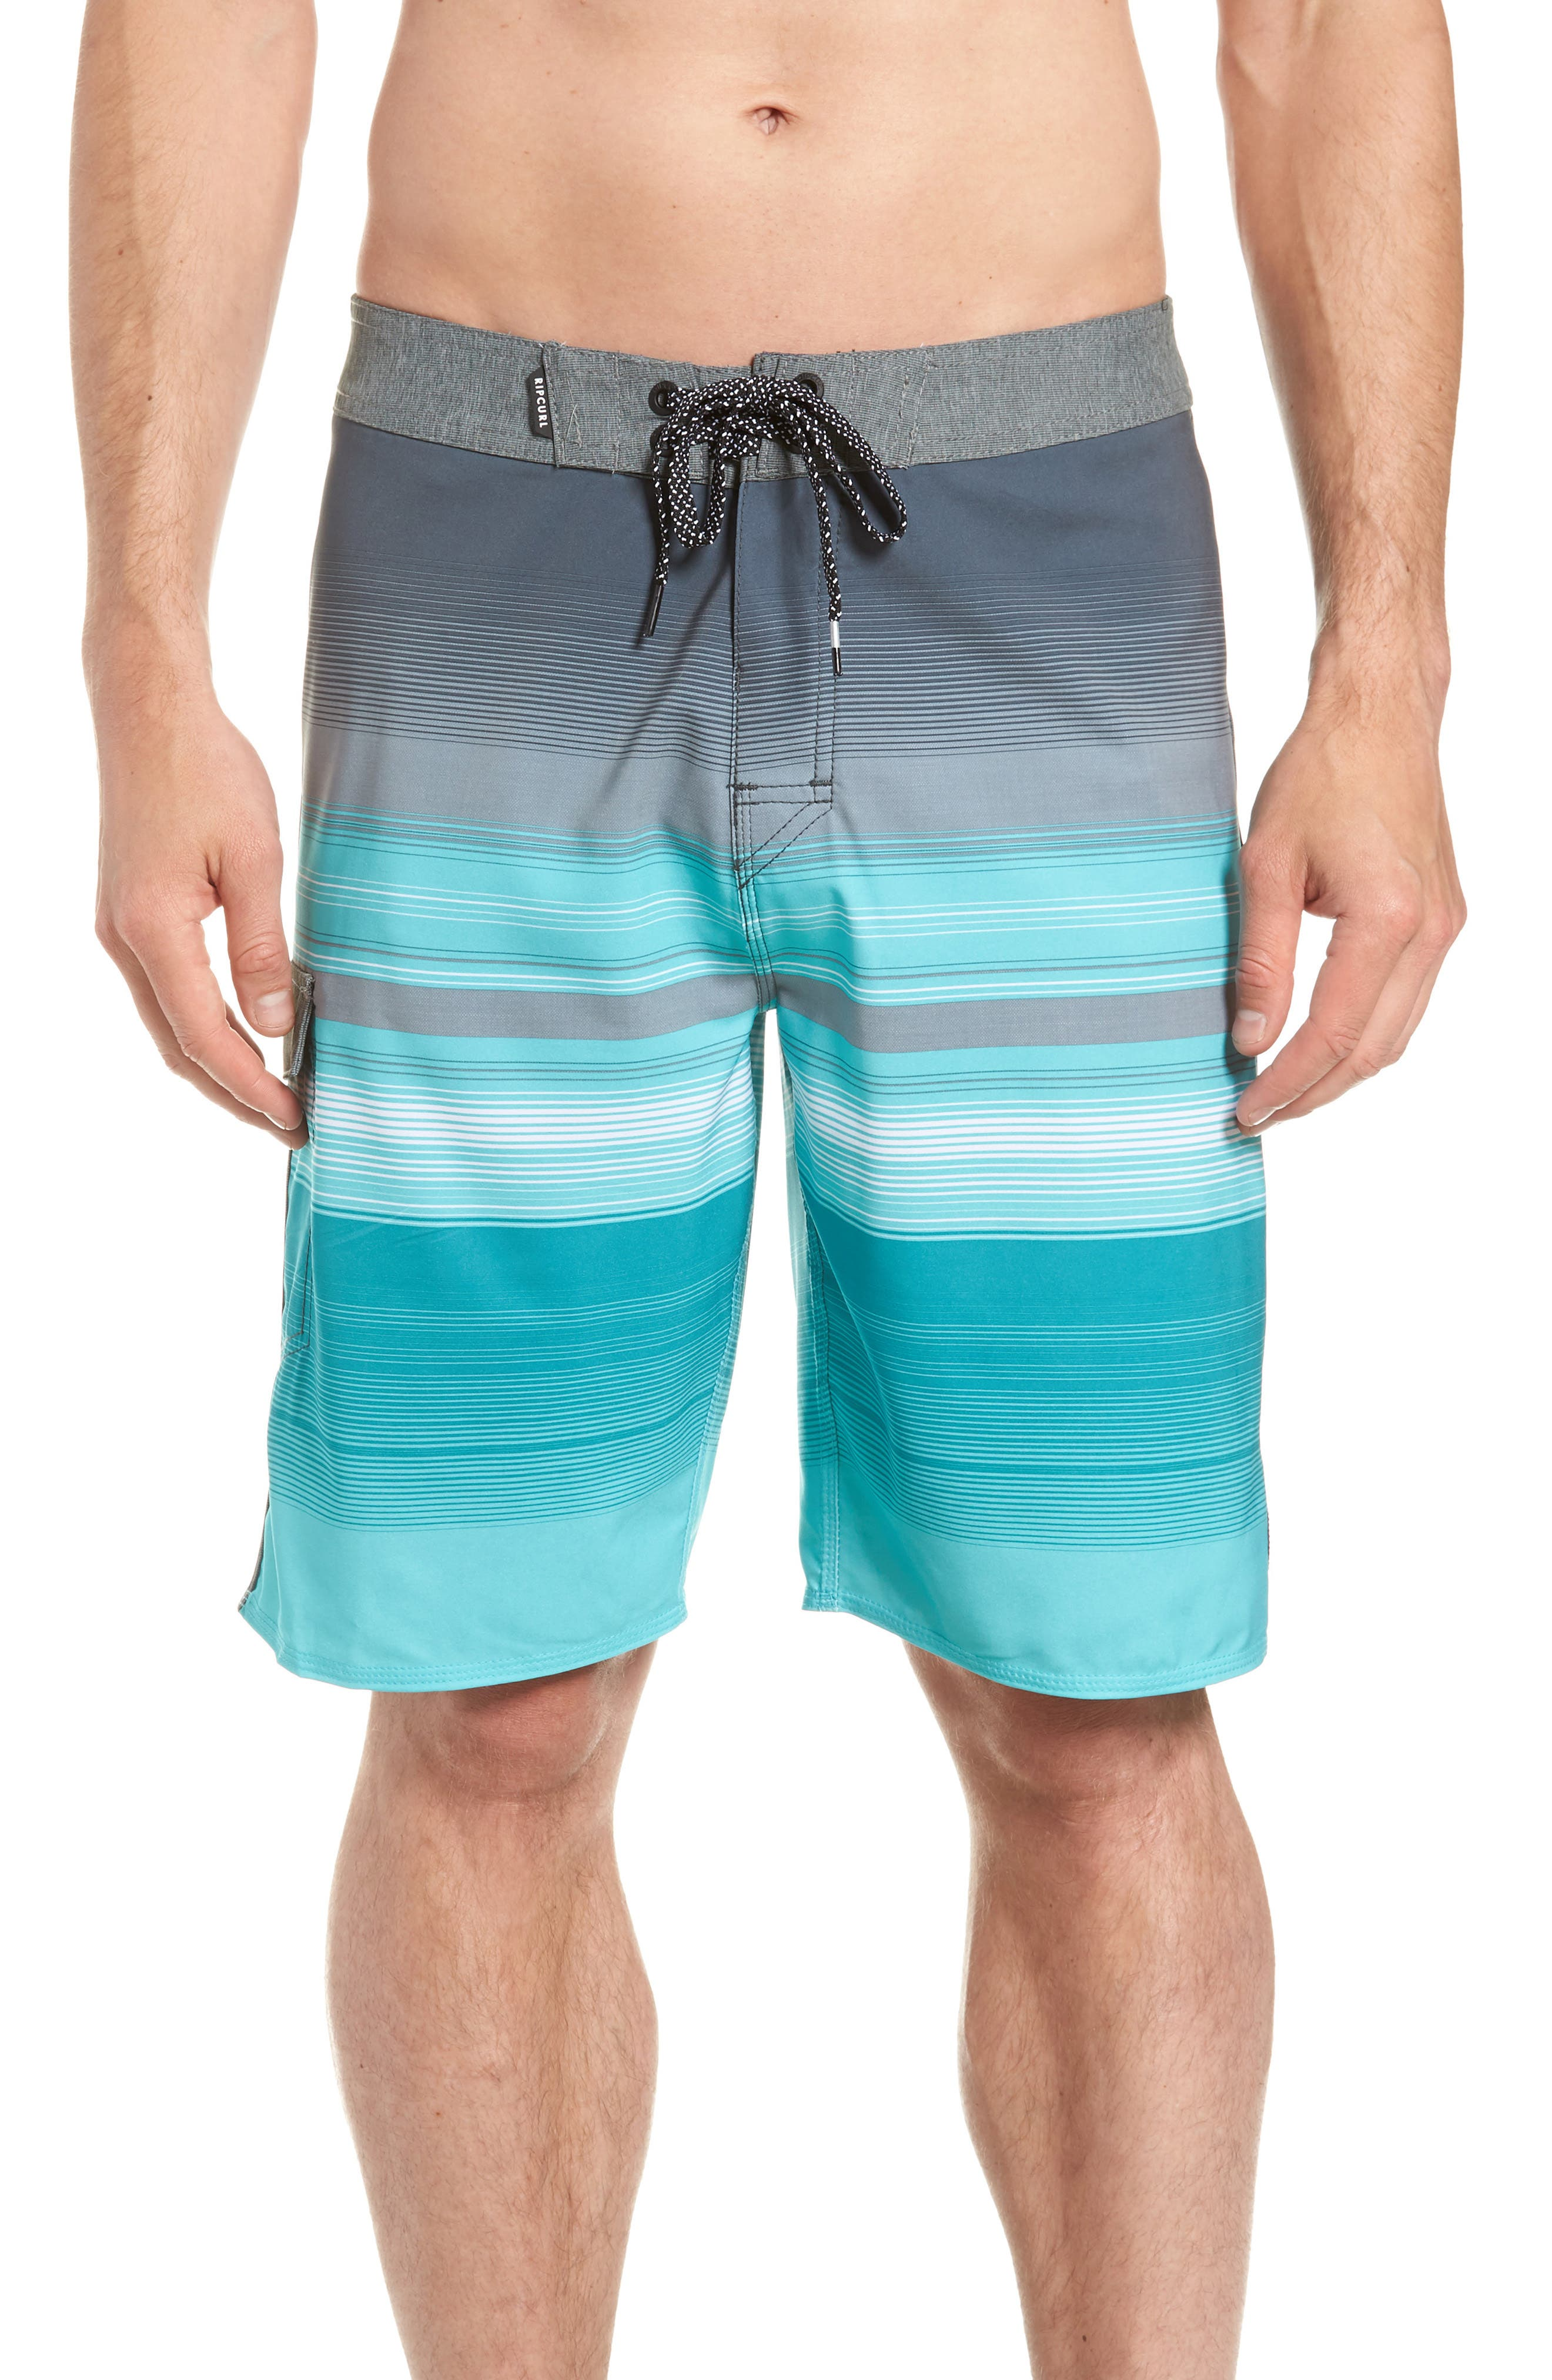 Mirage Accelerate Board Shorts,                         Main,                         color, 443